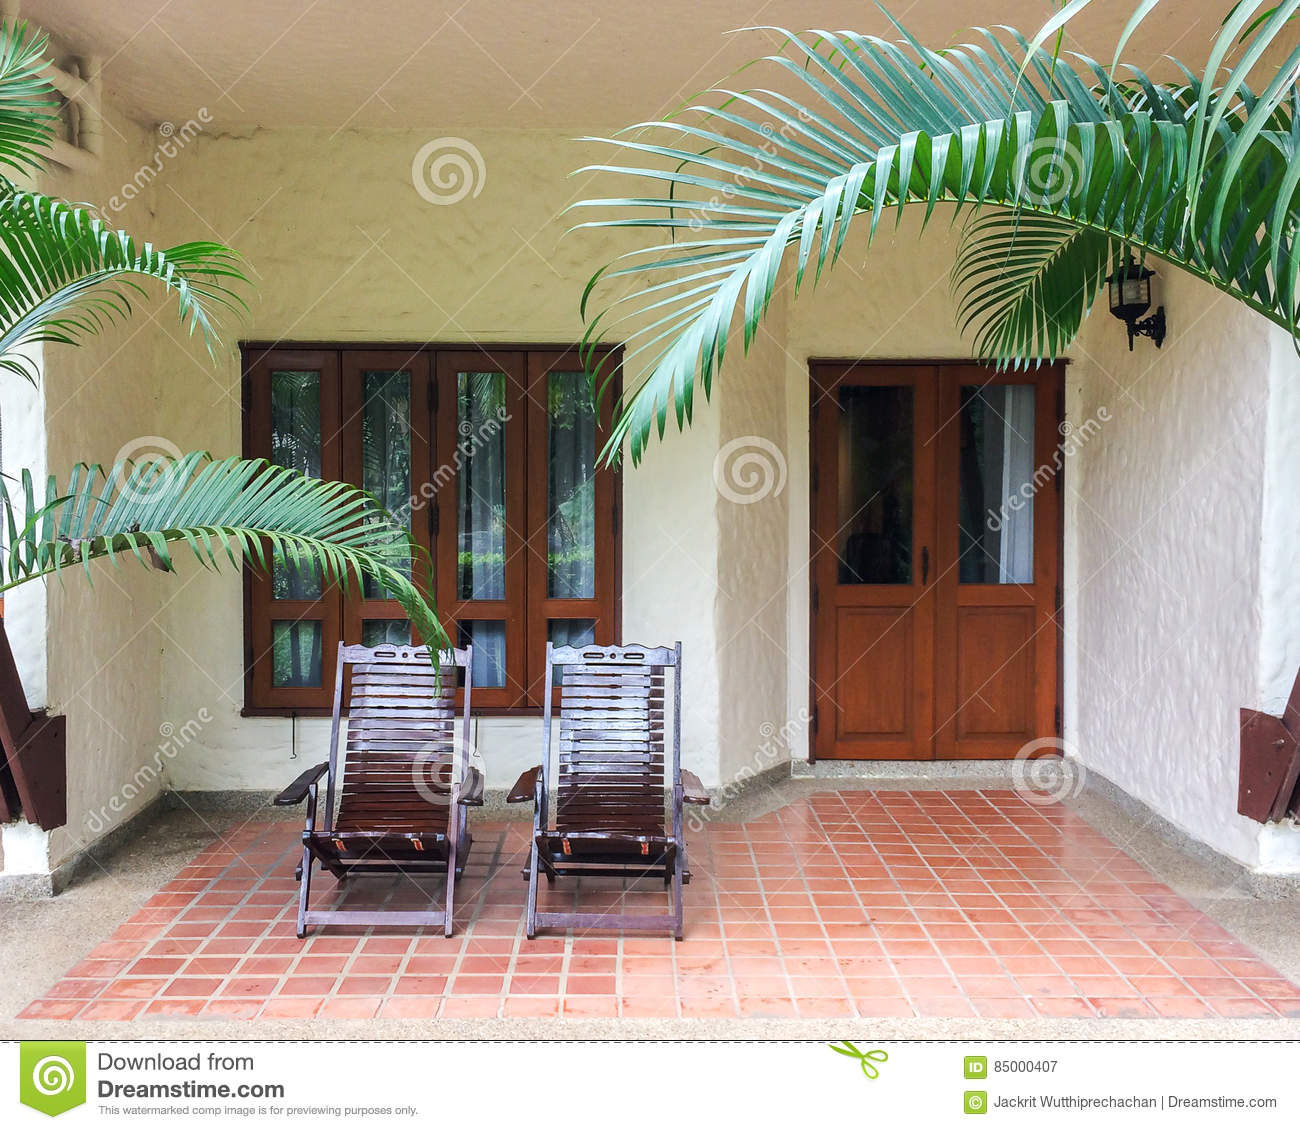 Couple of Traditional Wooden Deck Chairs on Patio of Balcony or Terrace in Open Area in front of Windows and Doors for Relax